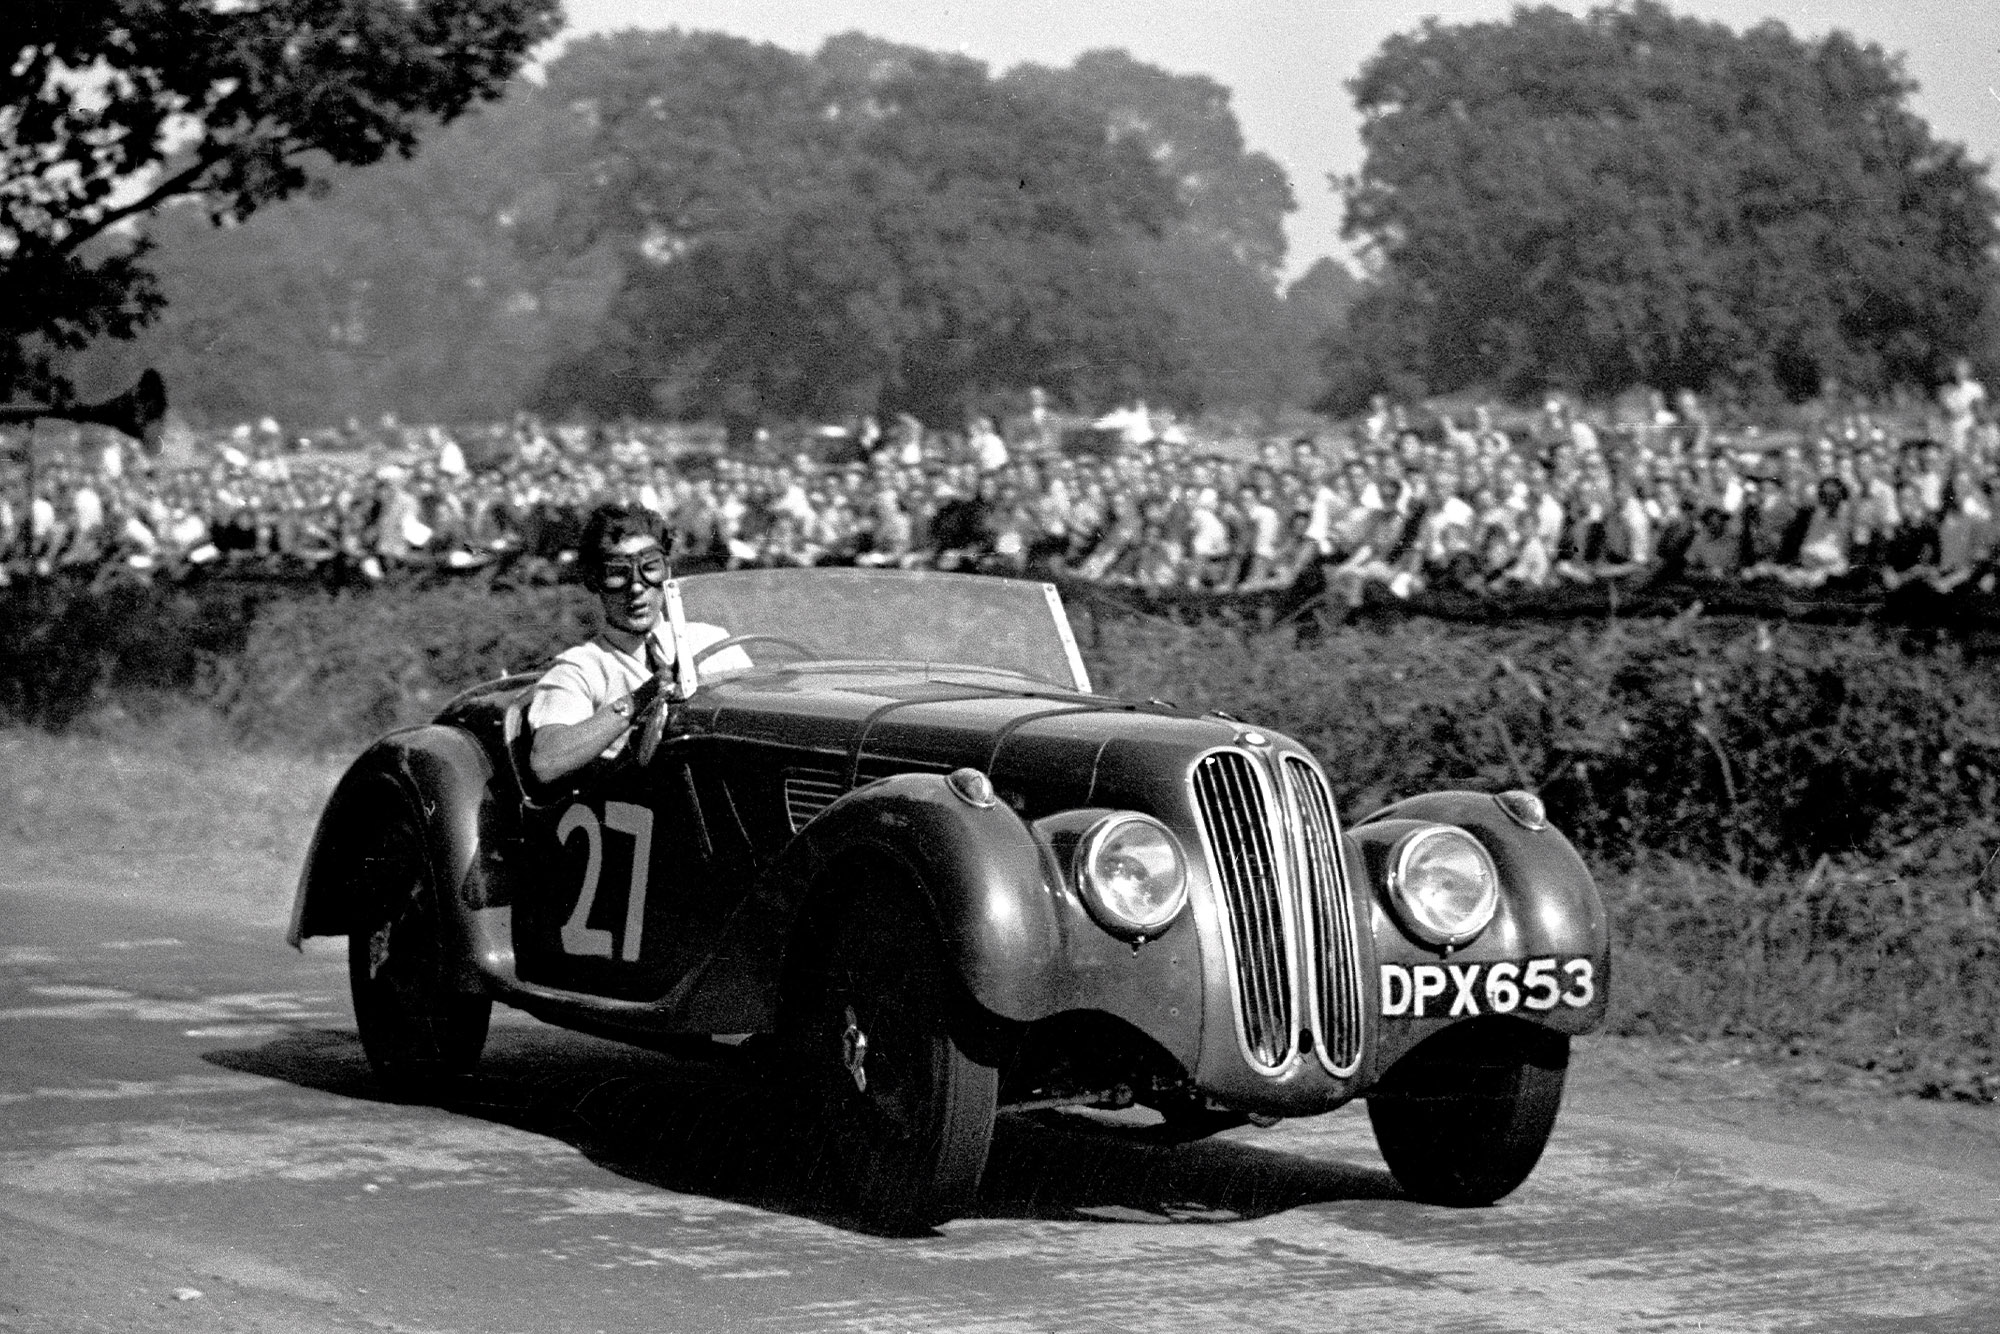 Stirling Moss driving his fathers Frazer-Nash BMW in the 1947 poole Speed Trials